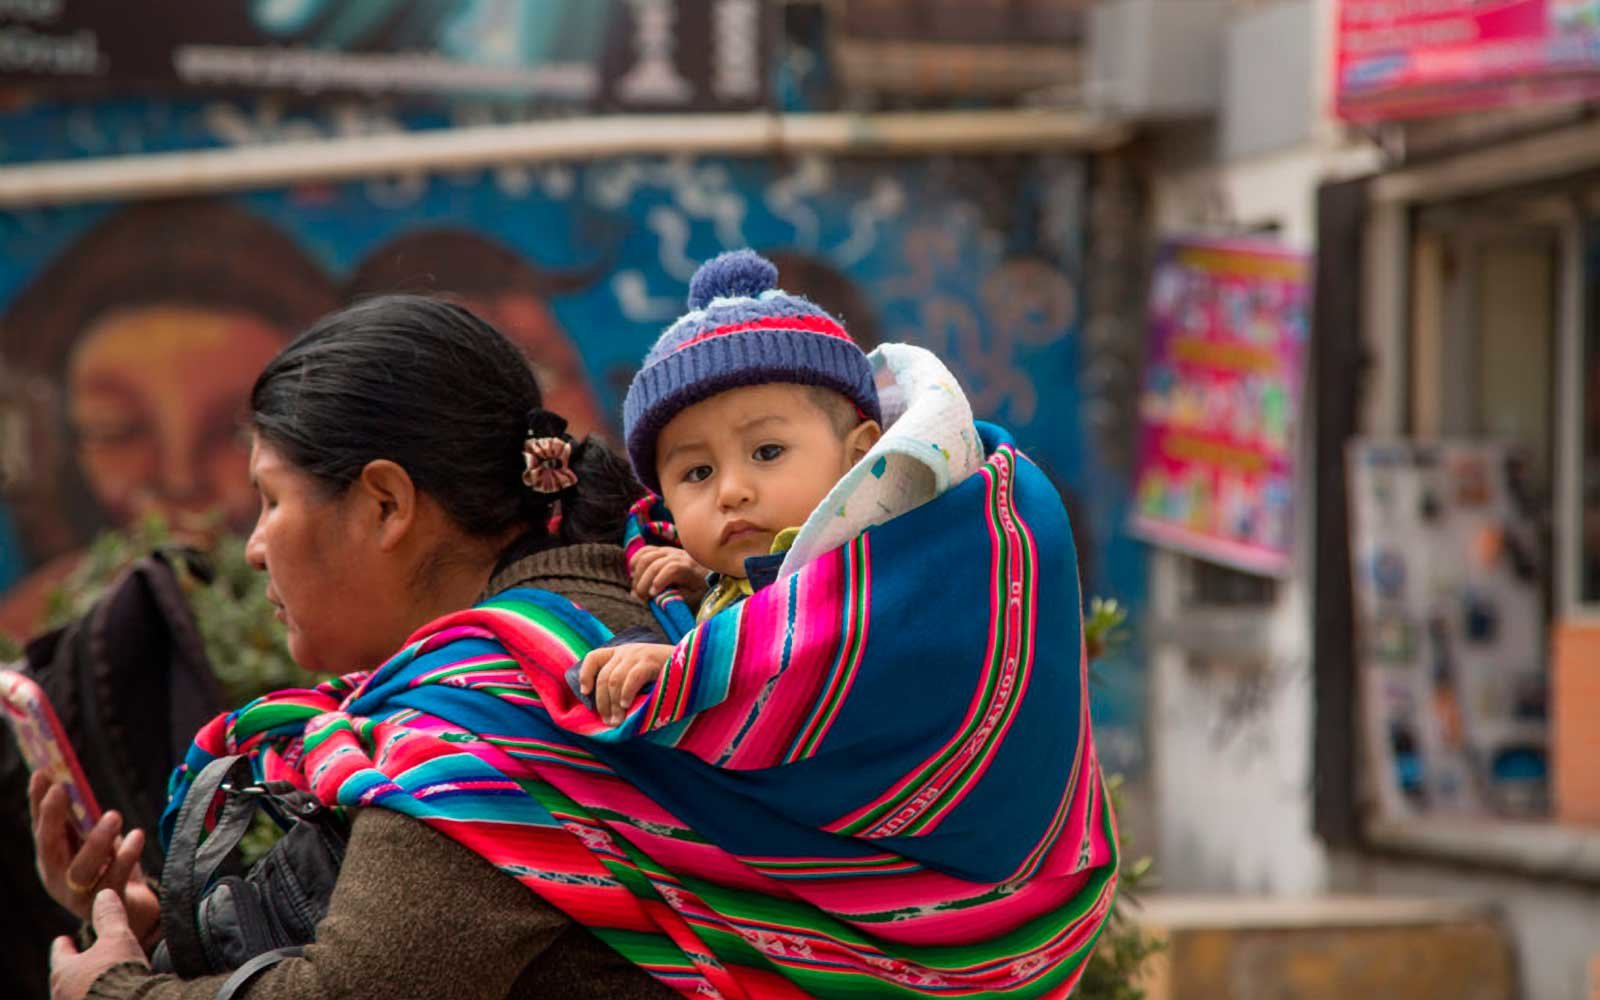 Mother and Child in Centro, La Paz, Bolivia